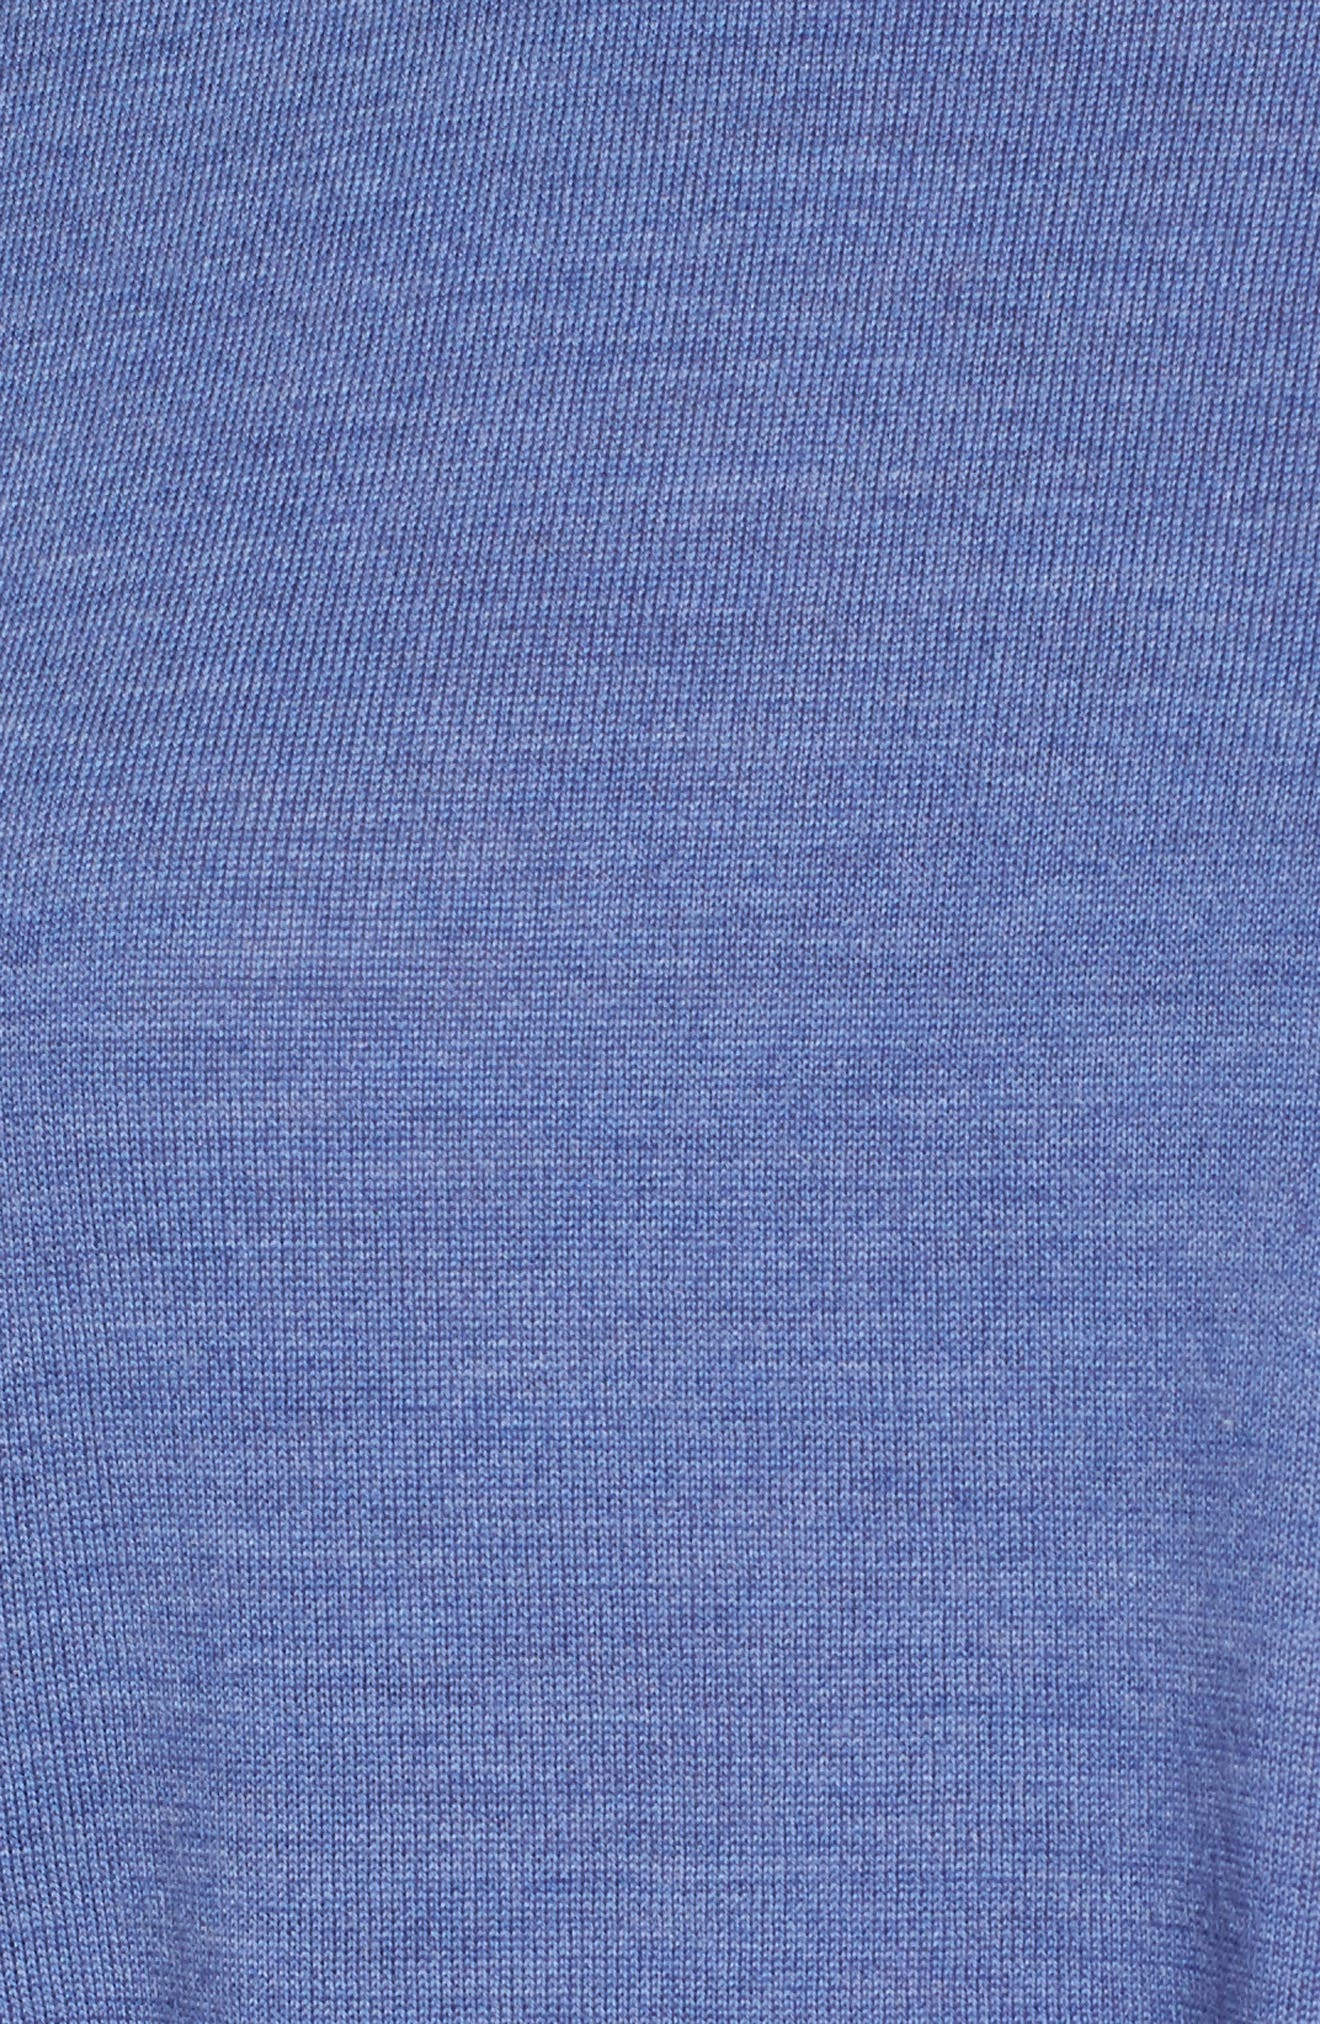 Asymmetrical Merino Wool Sweater,                             Alternate thumbnail 5, color,                             Periwinkle